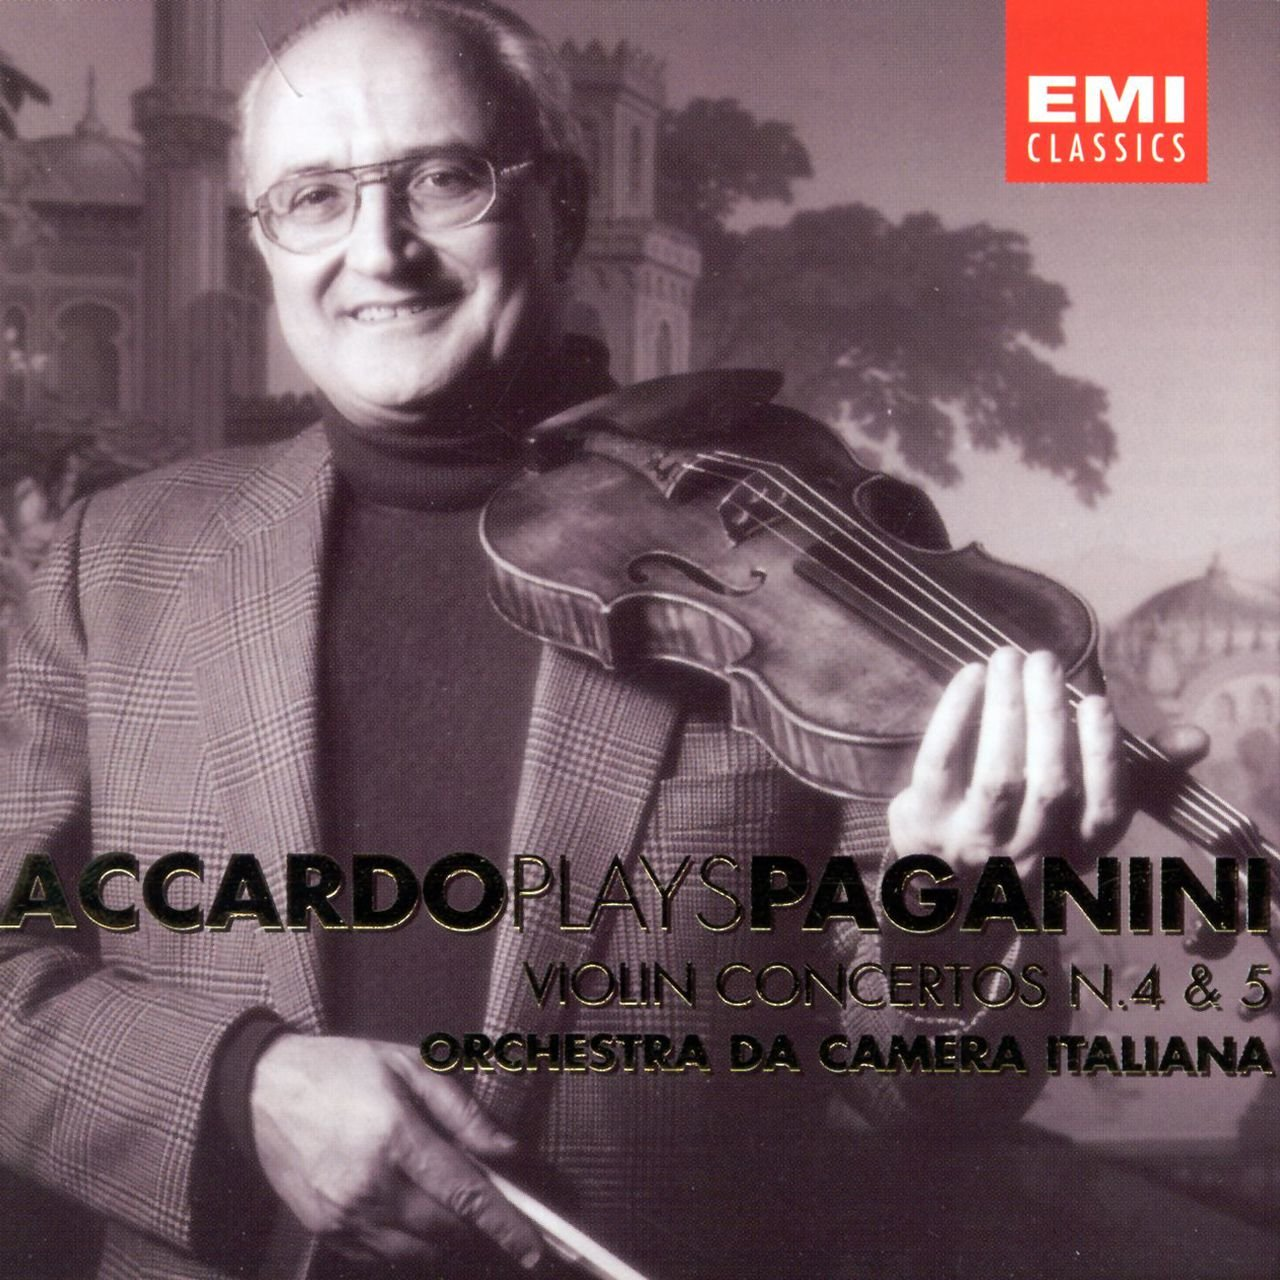 Accardo Plays Paganini - Vol. 3